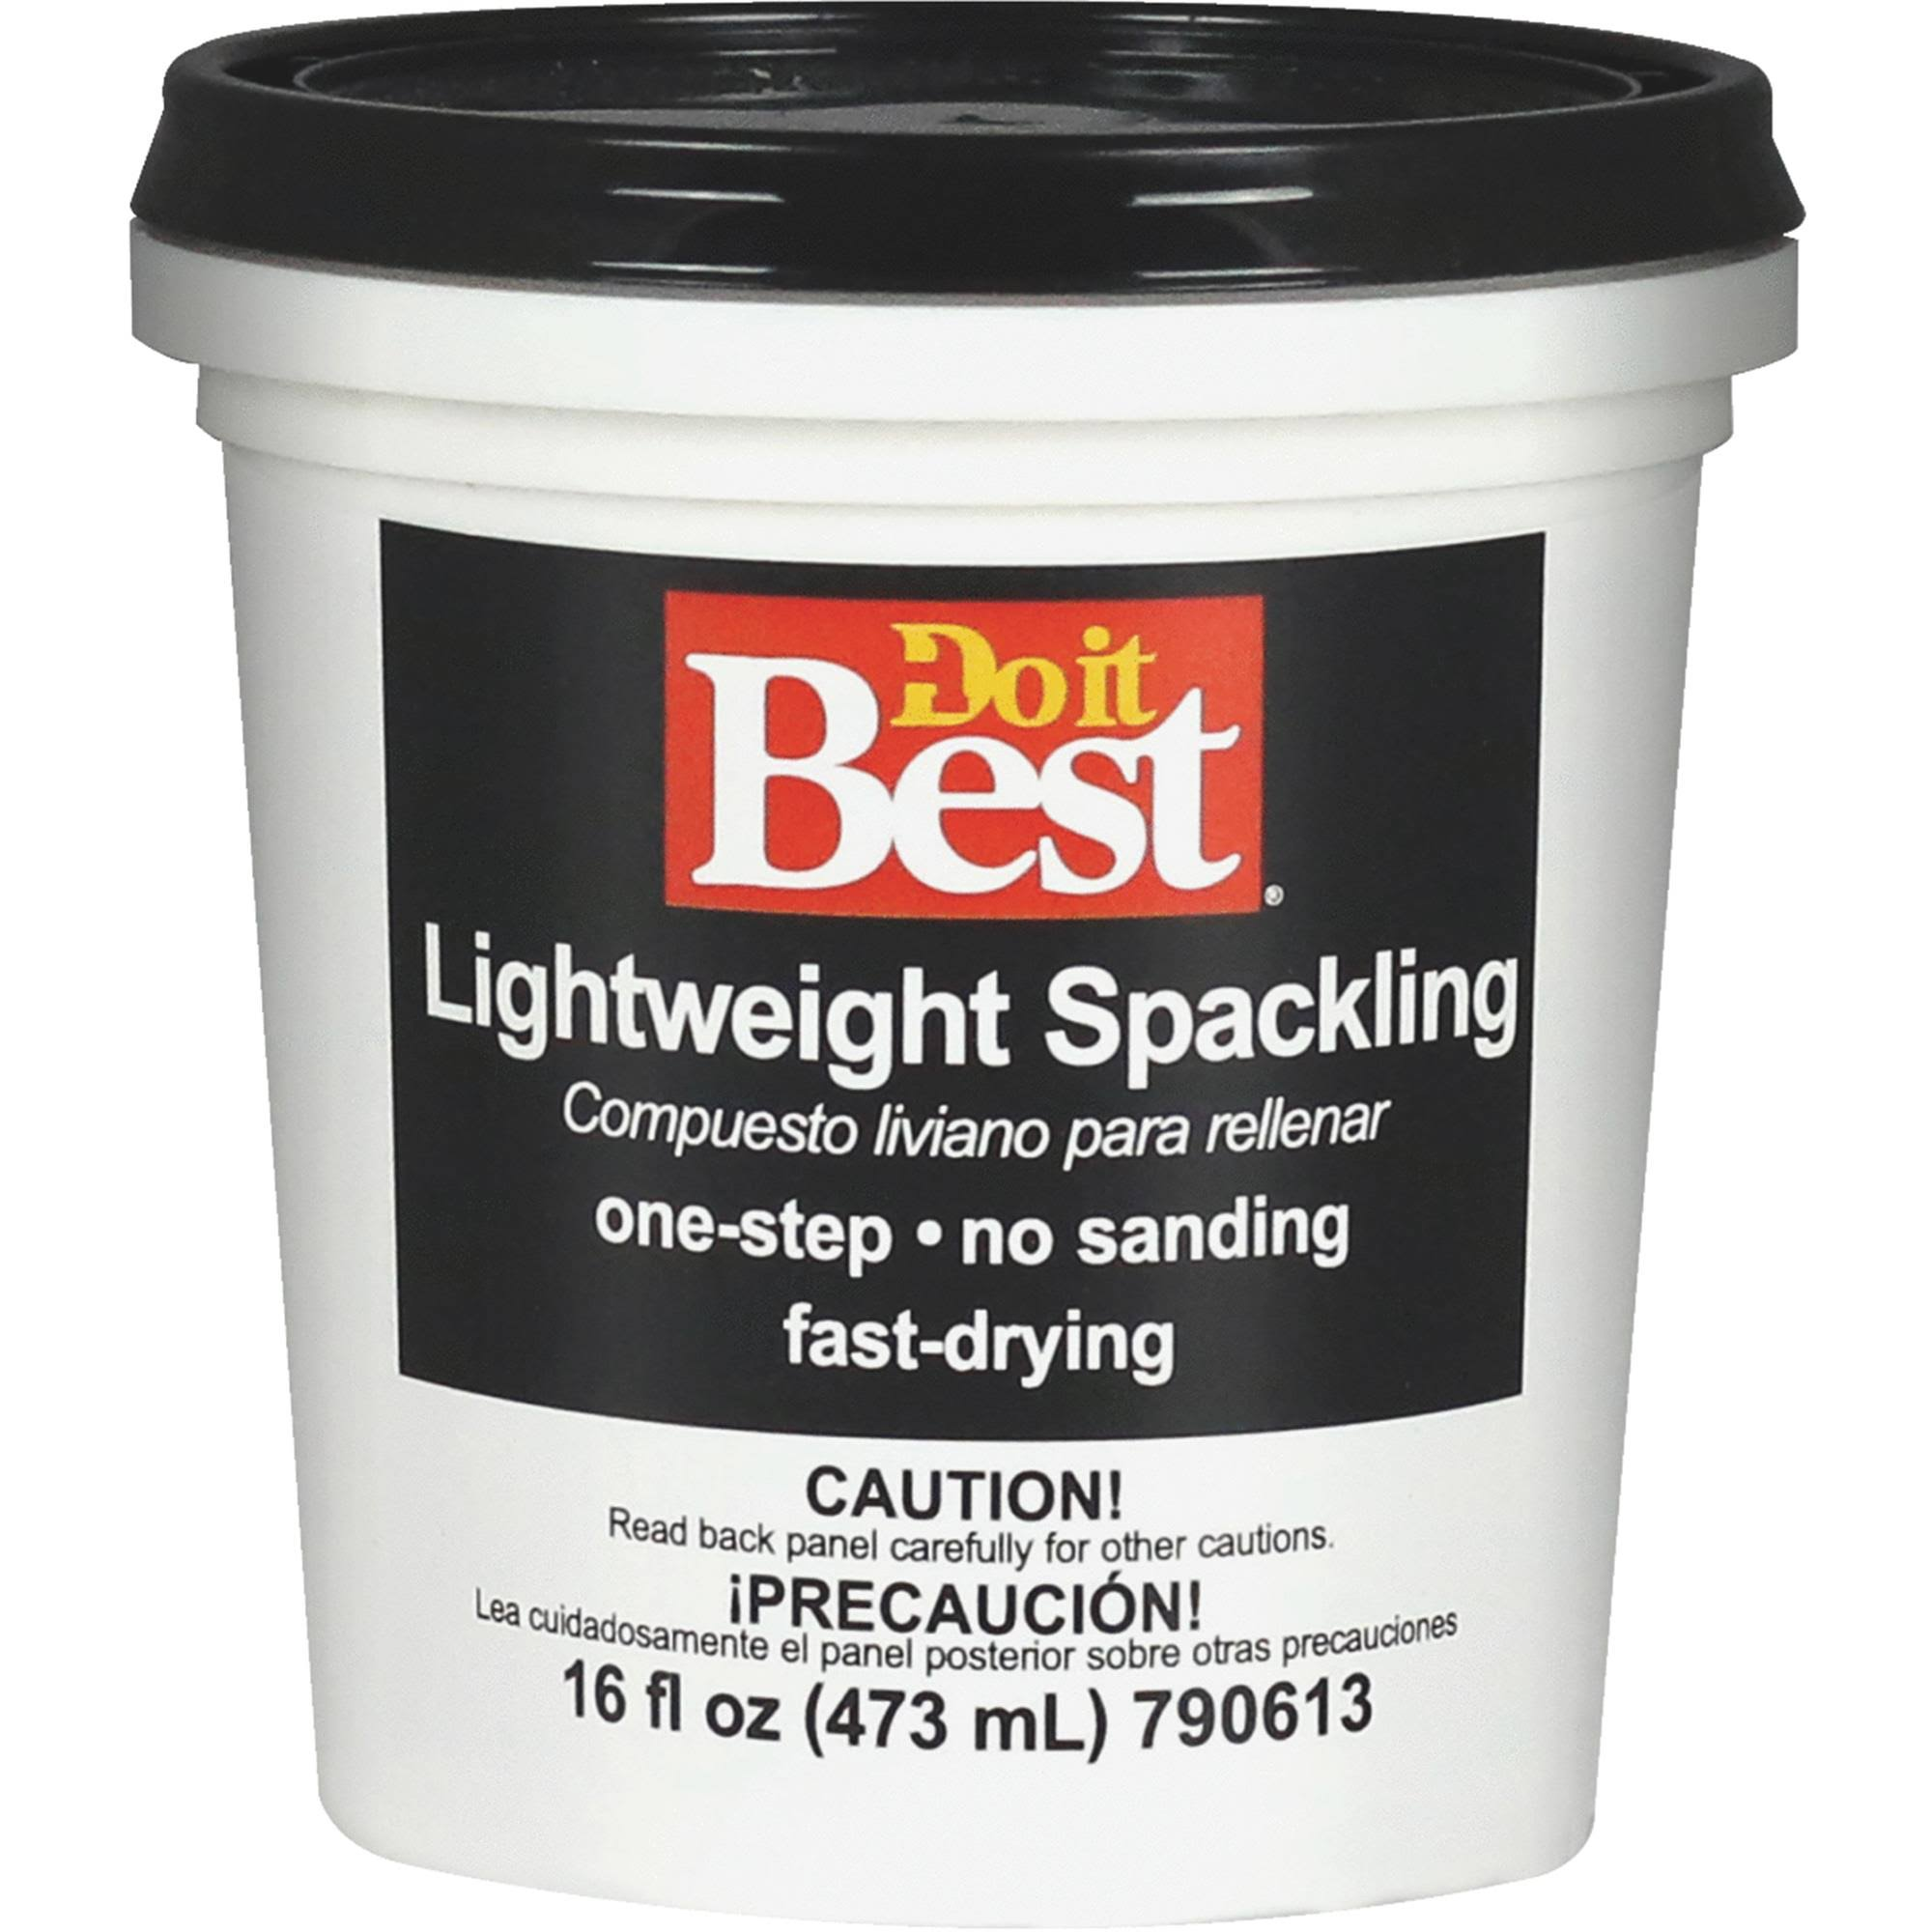 Do It Best Lightweight Spackling - 1 Pint